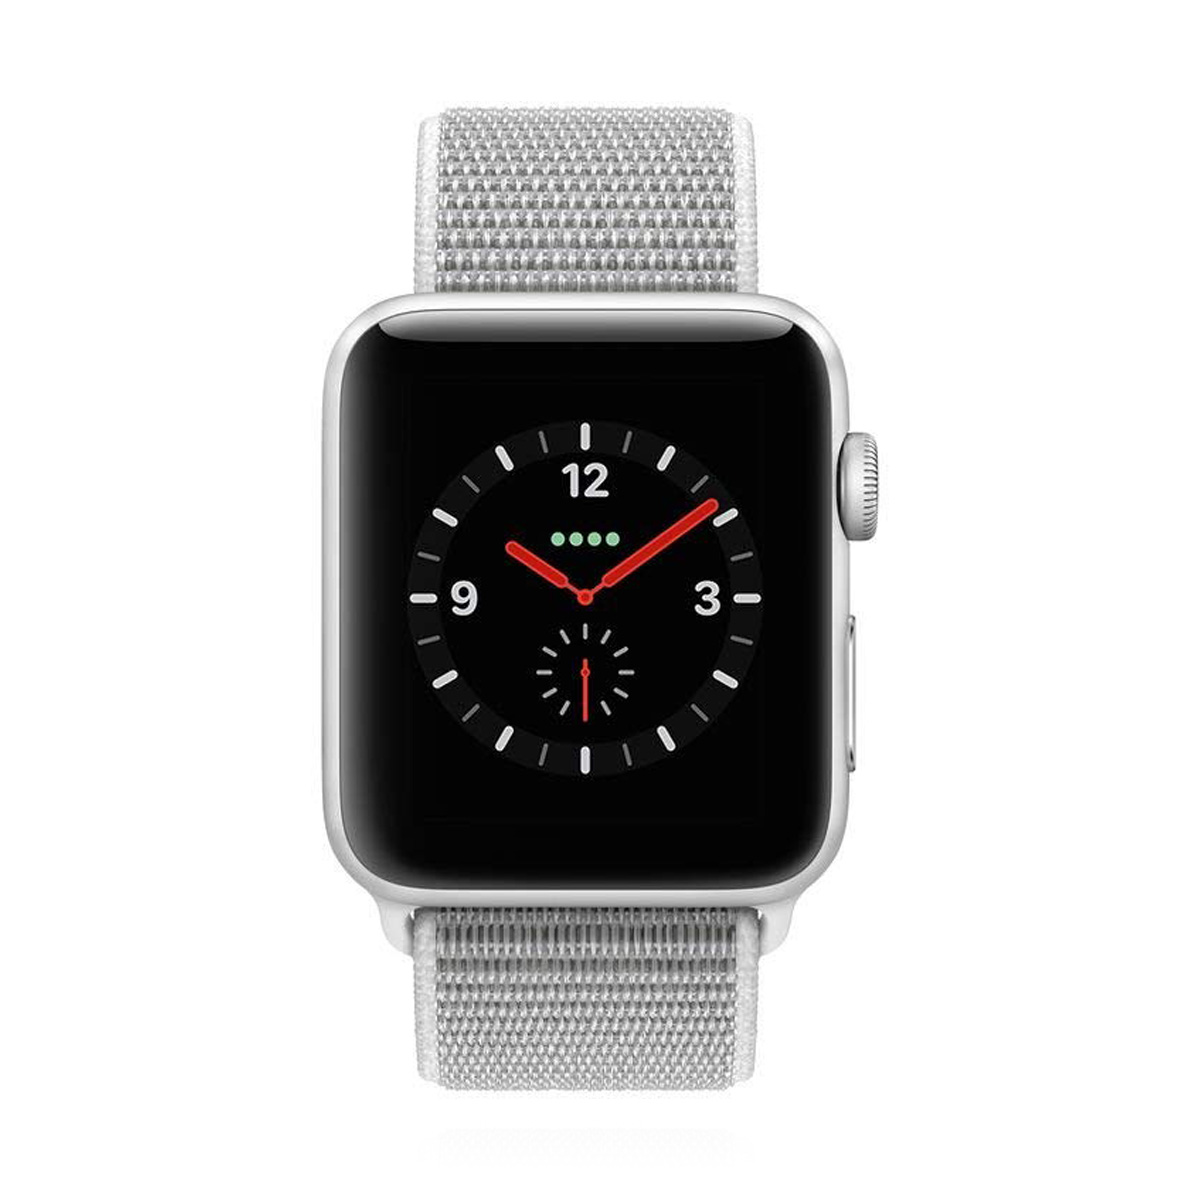 Apple WATCH Series 3 GPS+Cellular 42mm silbernes Aluminiumgehäuse mit seashell Sport Loop